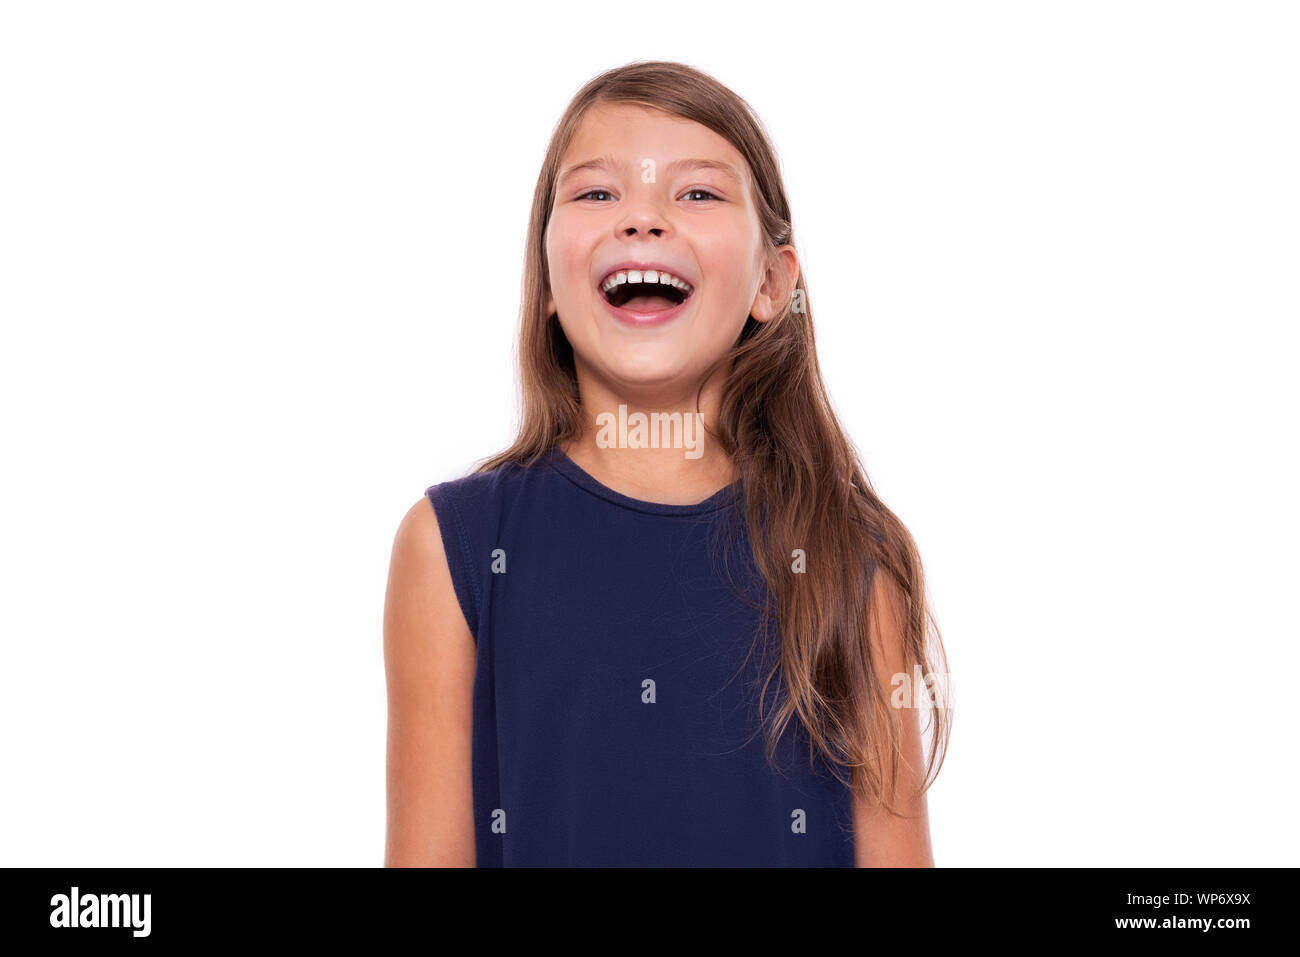 Portrait of a young smiling girl on a white. Stock Photo